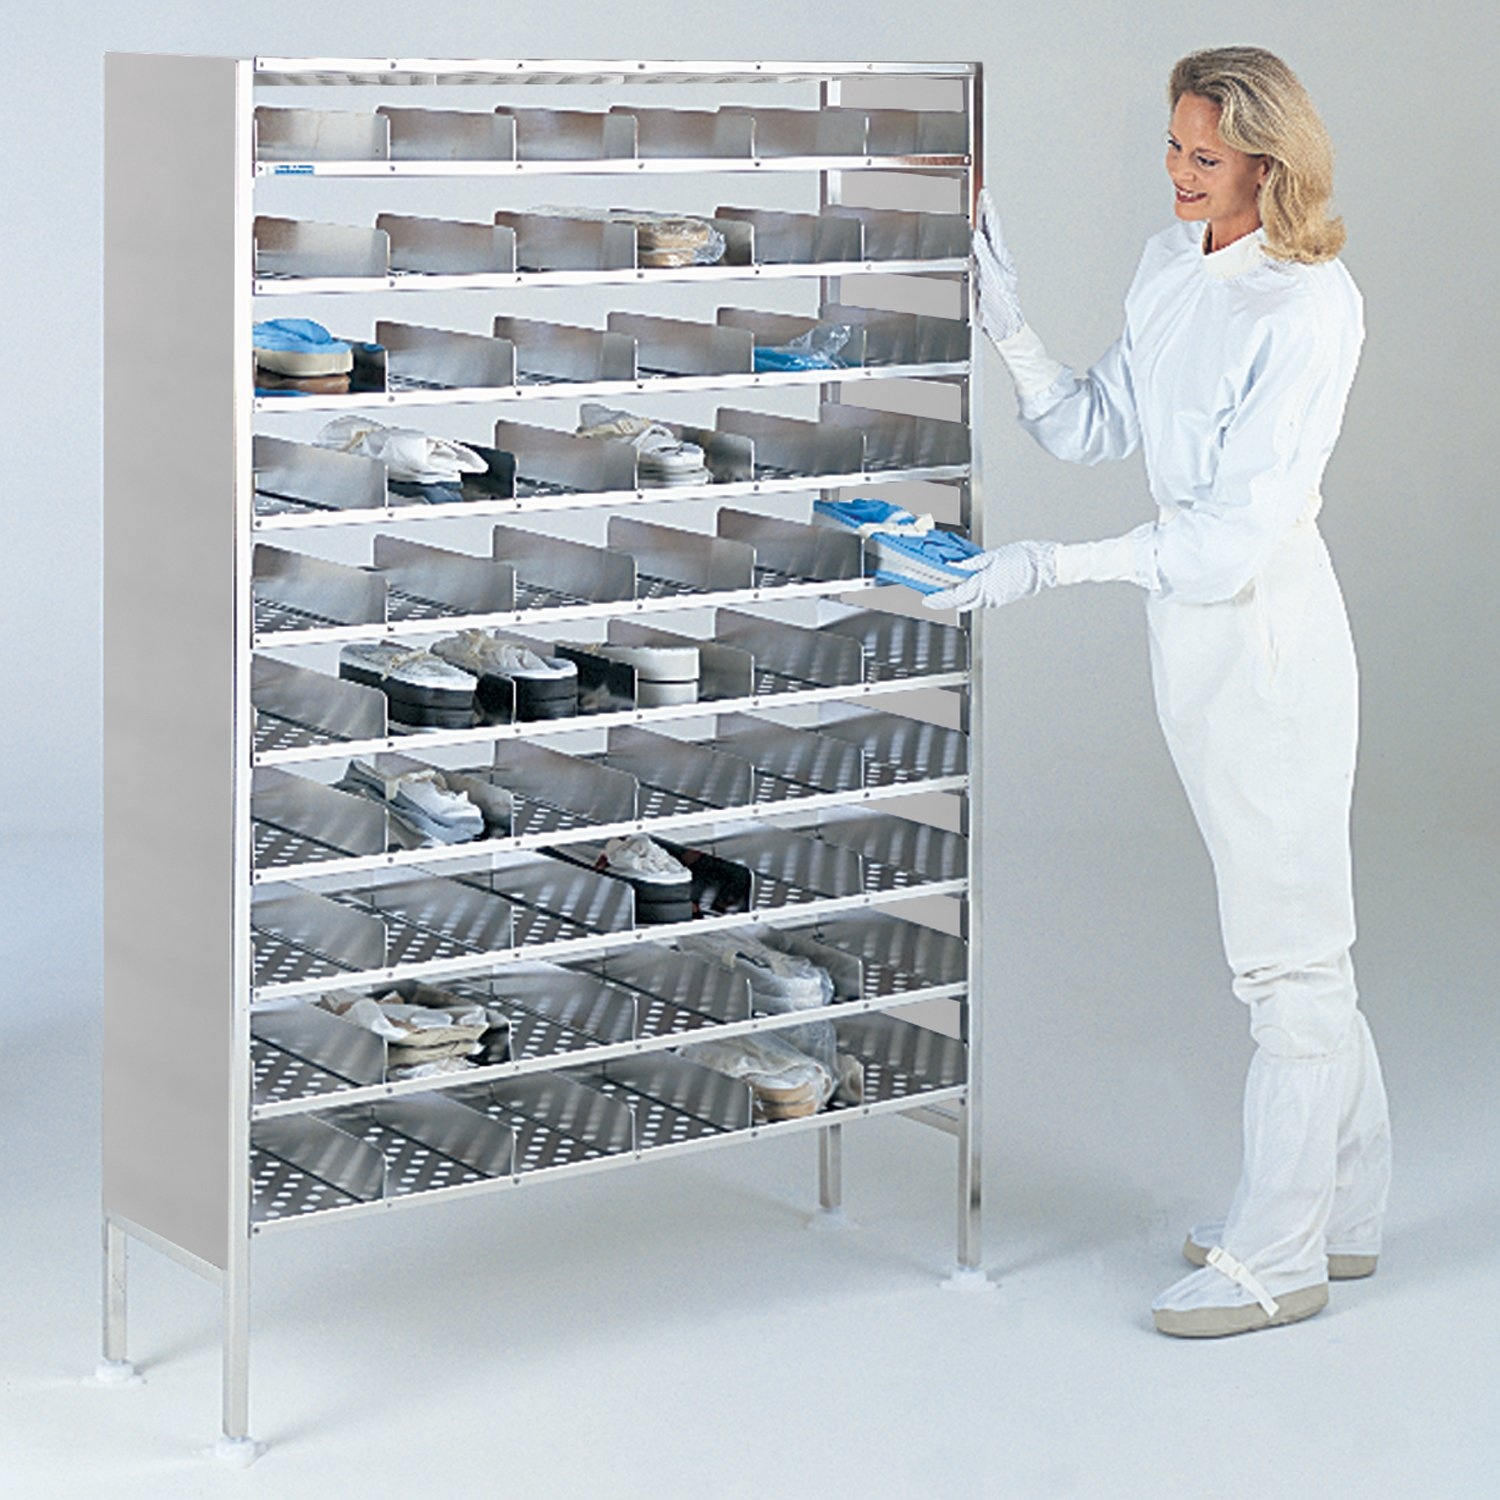 BioSafe Bootie Rack for Gowning Rooms and Cleanrooms